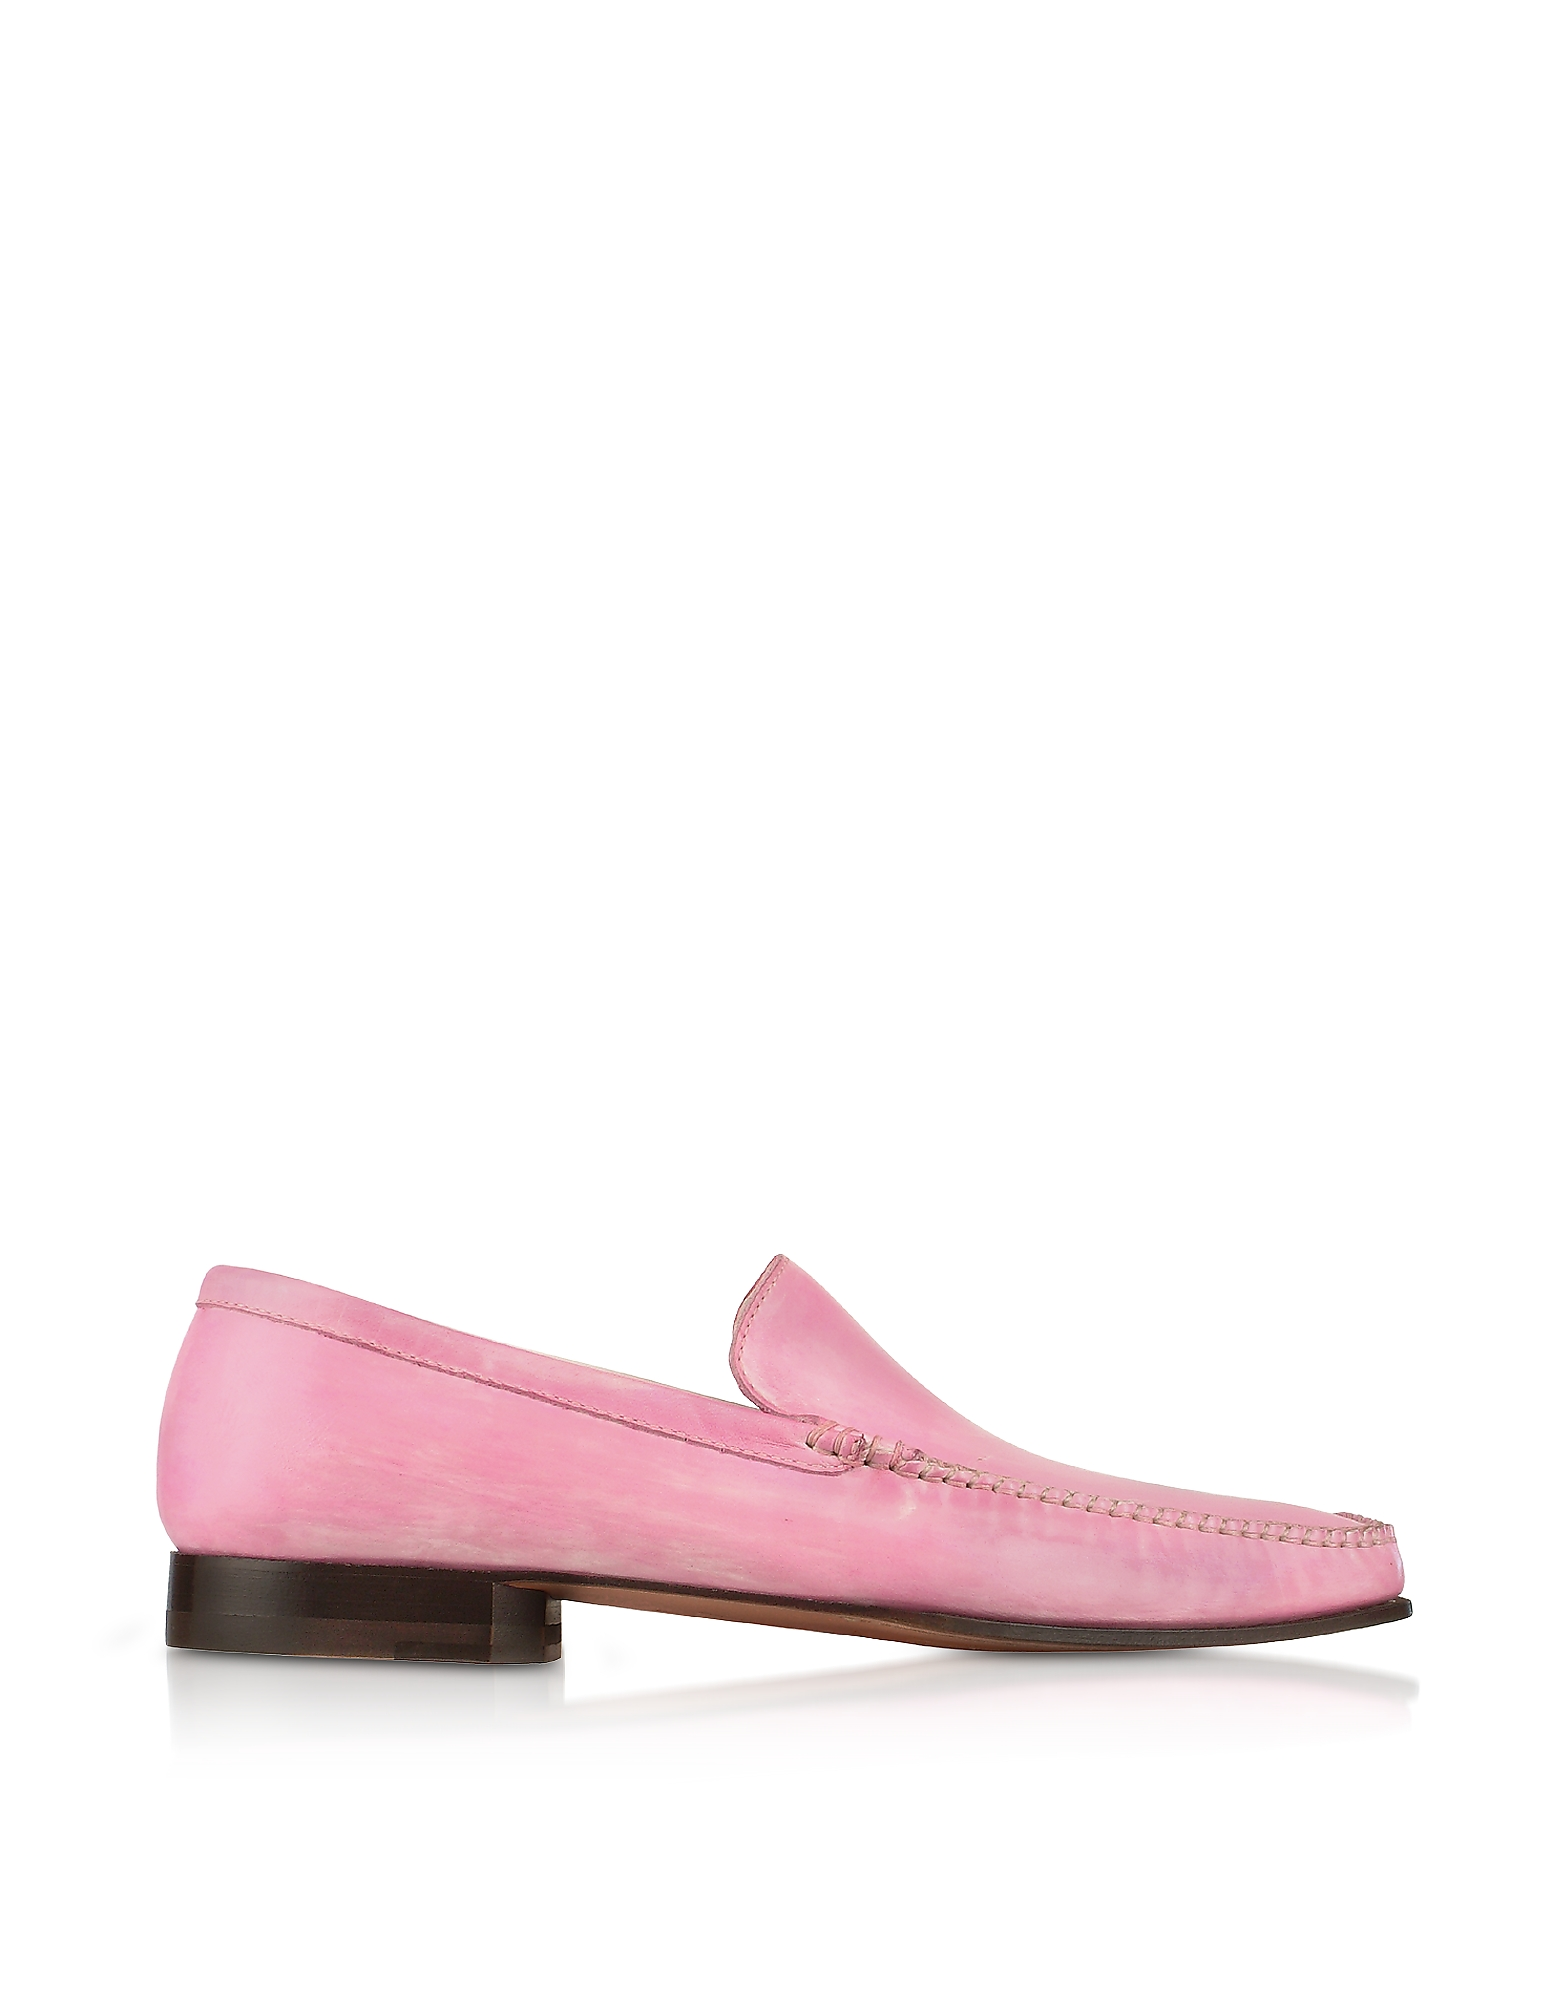 Pakerson Shoes, Pink Italian Handmade Leather Loafer Shoes